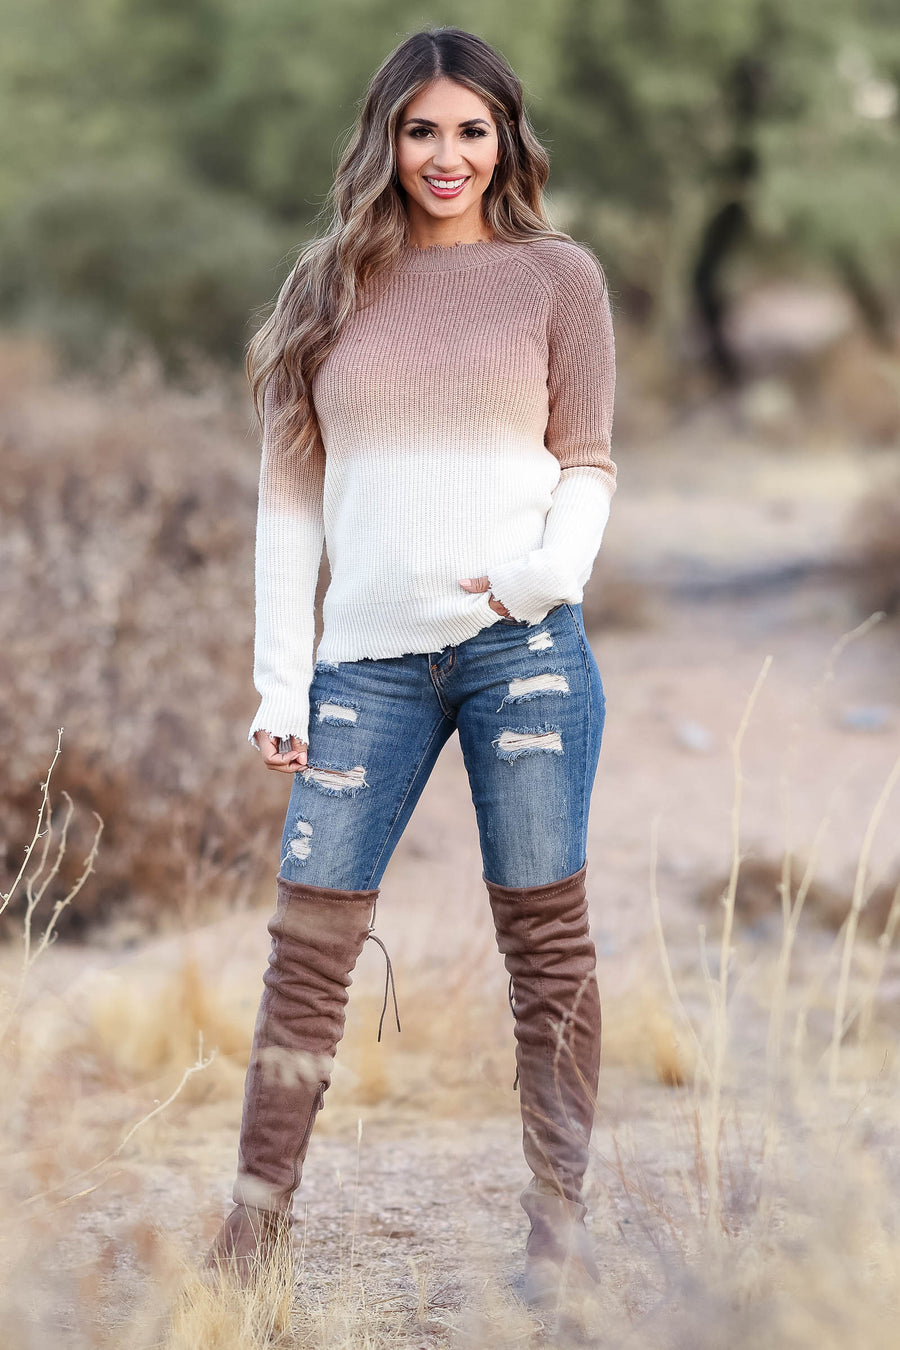 CBRAND Be The Light Distressed Sweater - Mocha womens trendy dip dye knit sweater closet candy front